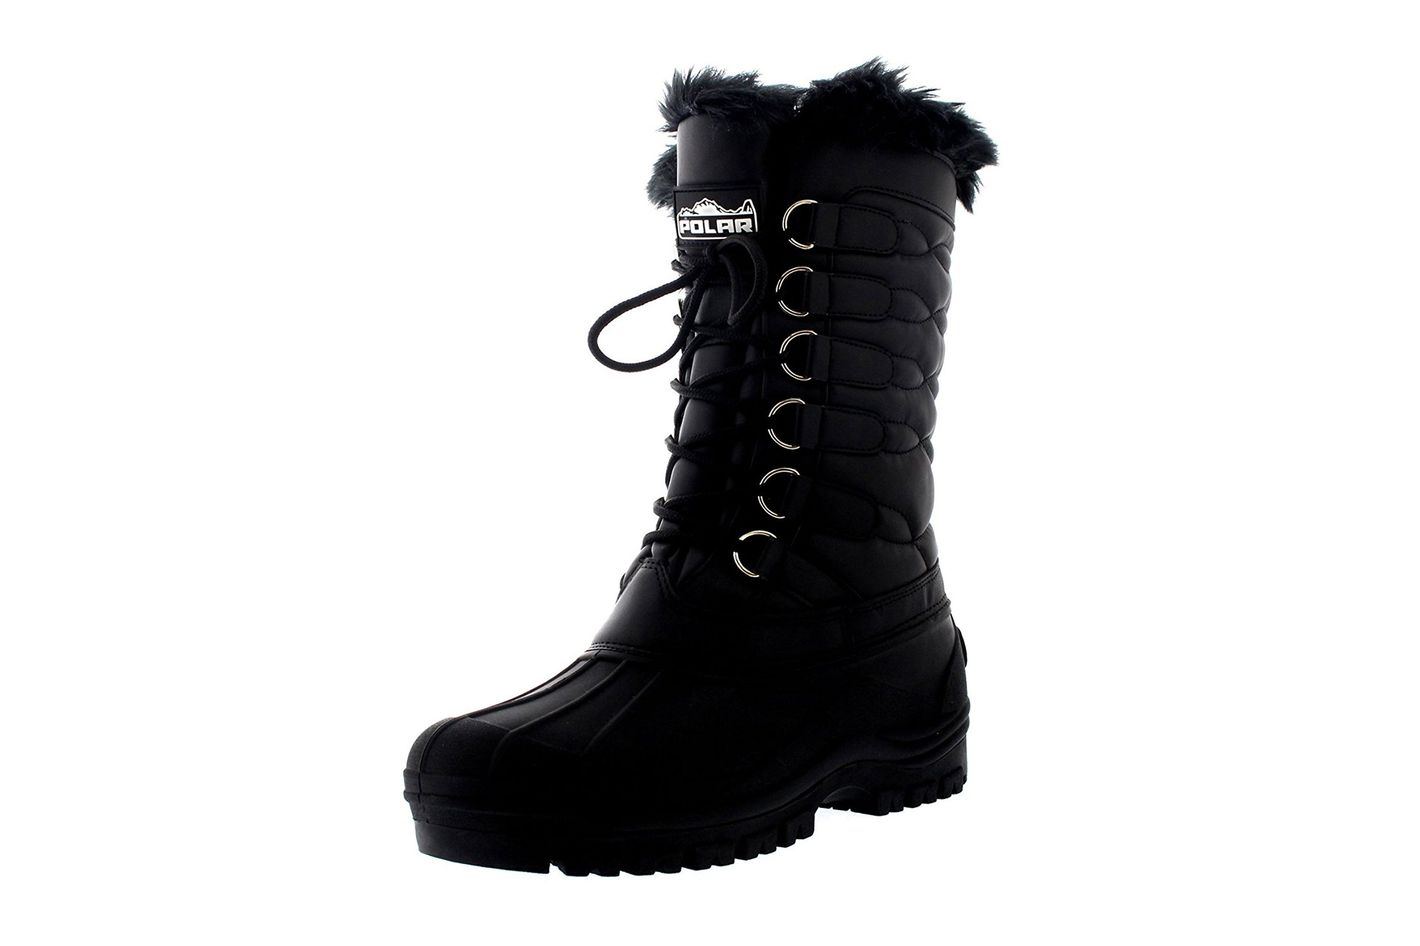 Women's Nylon Cold Weather Outdoor Snow Duck Winter Rain Lace Boot